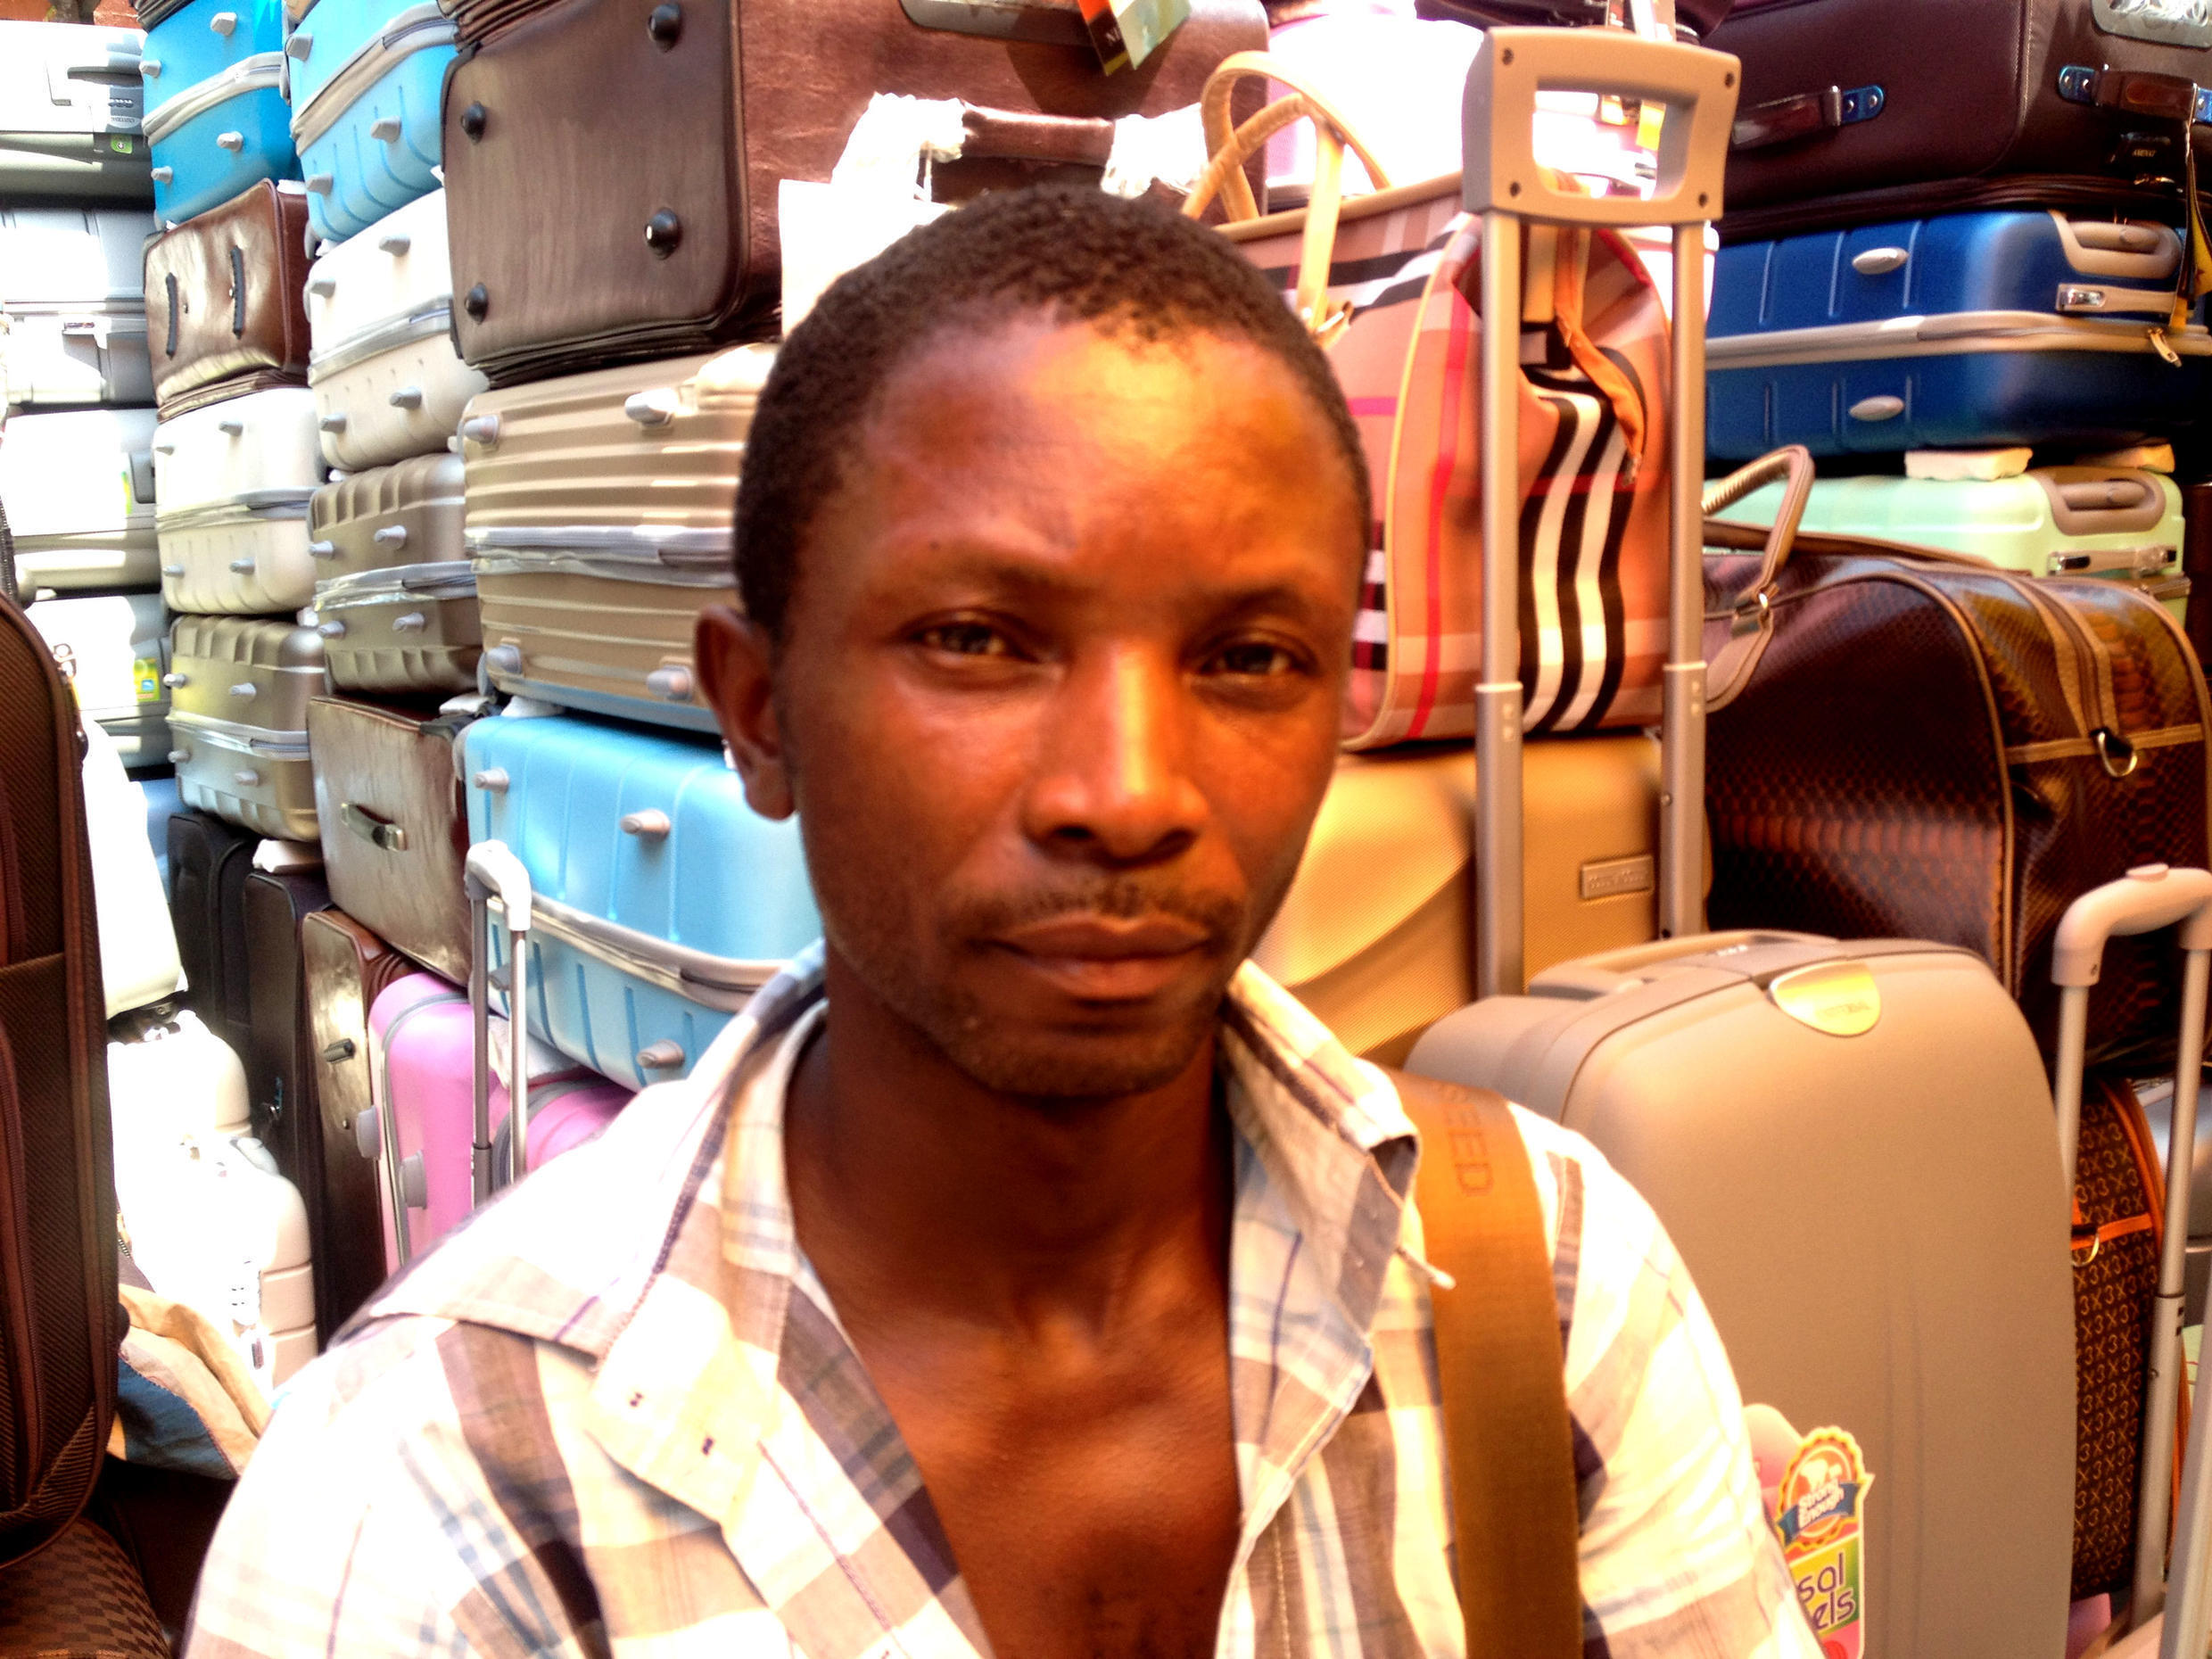 Vendor Christian Kyei is having a hard time selling enough suitcases to make a living.